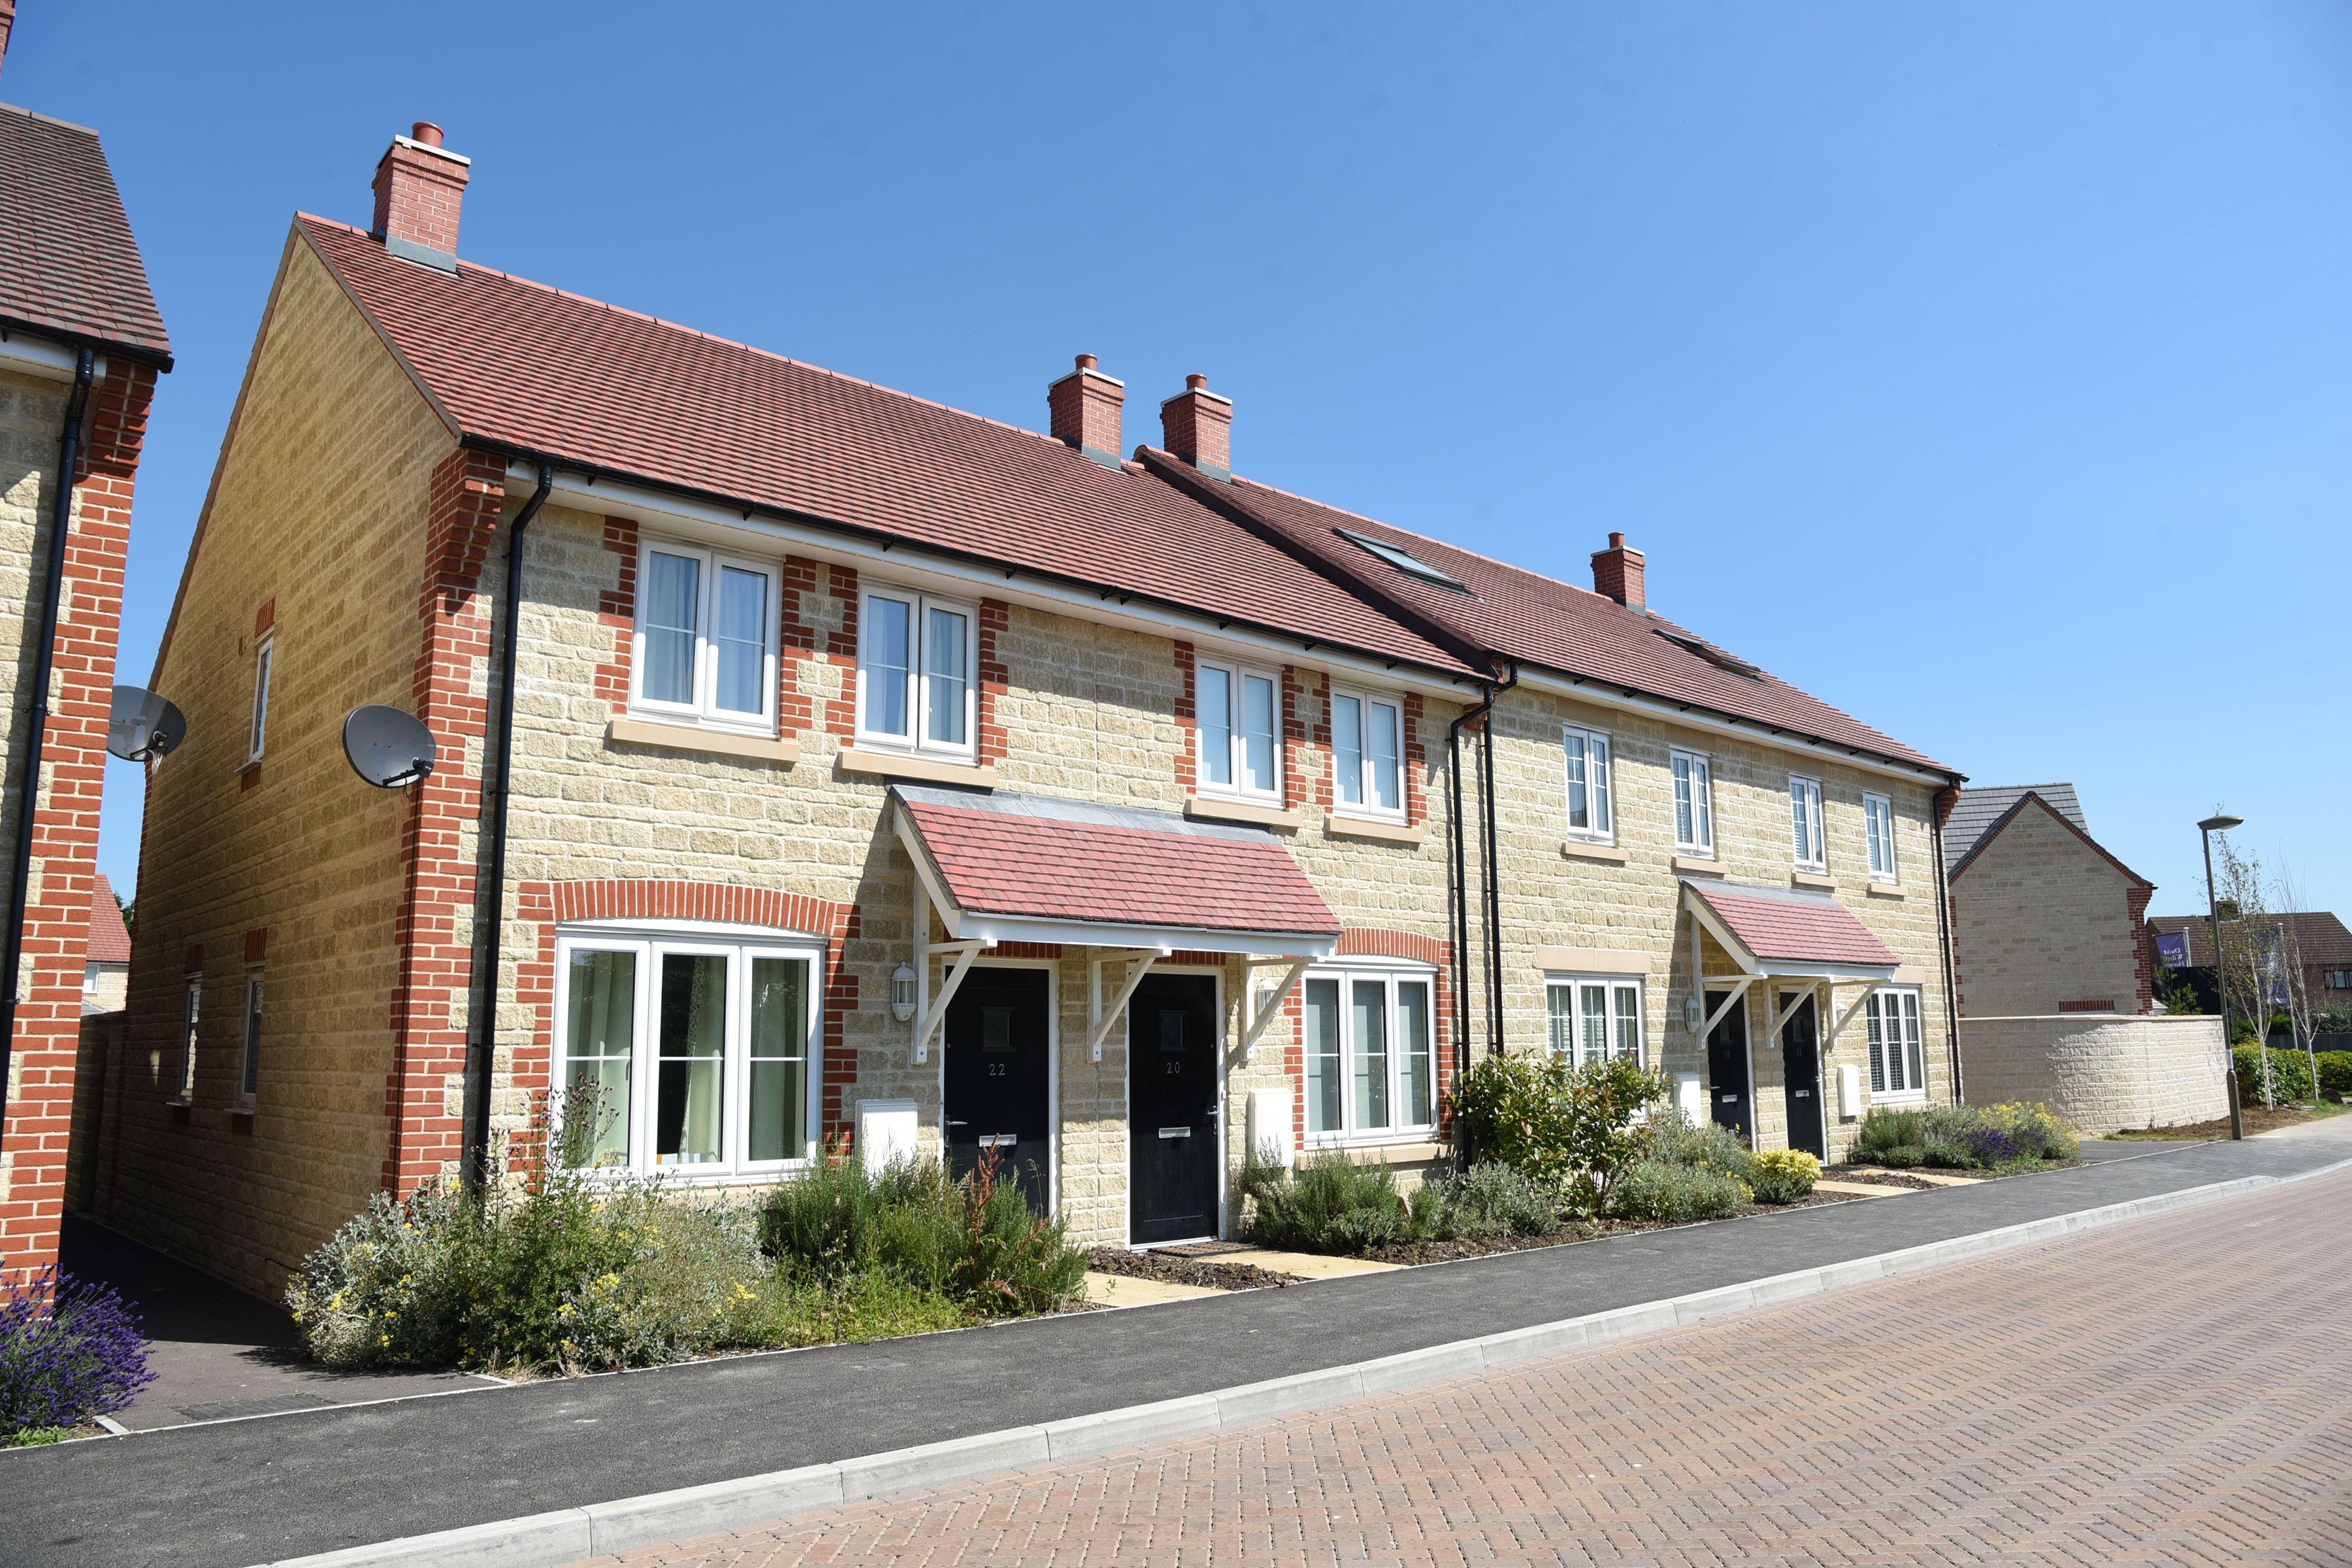 Stonewater secures £50m AHF loan to build more affordable homes